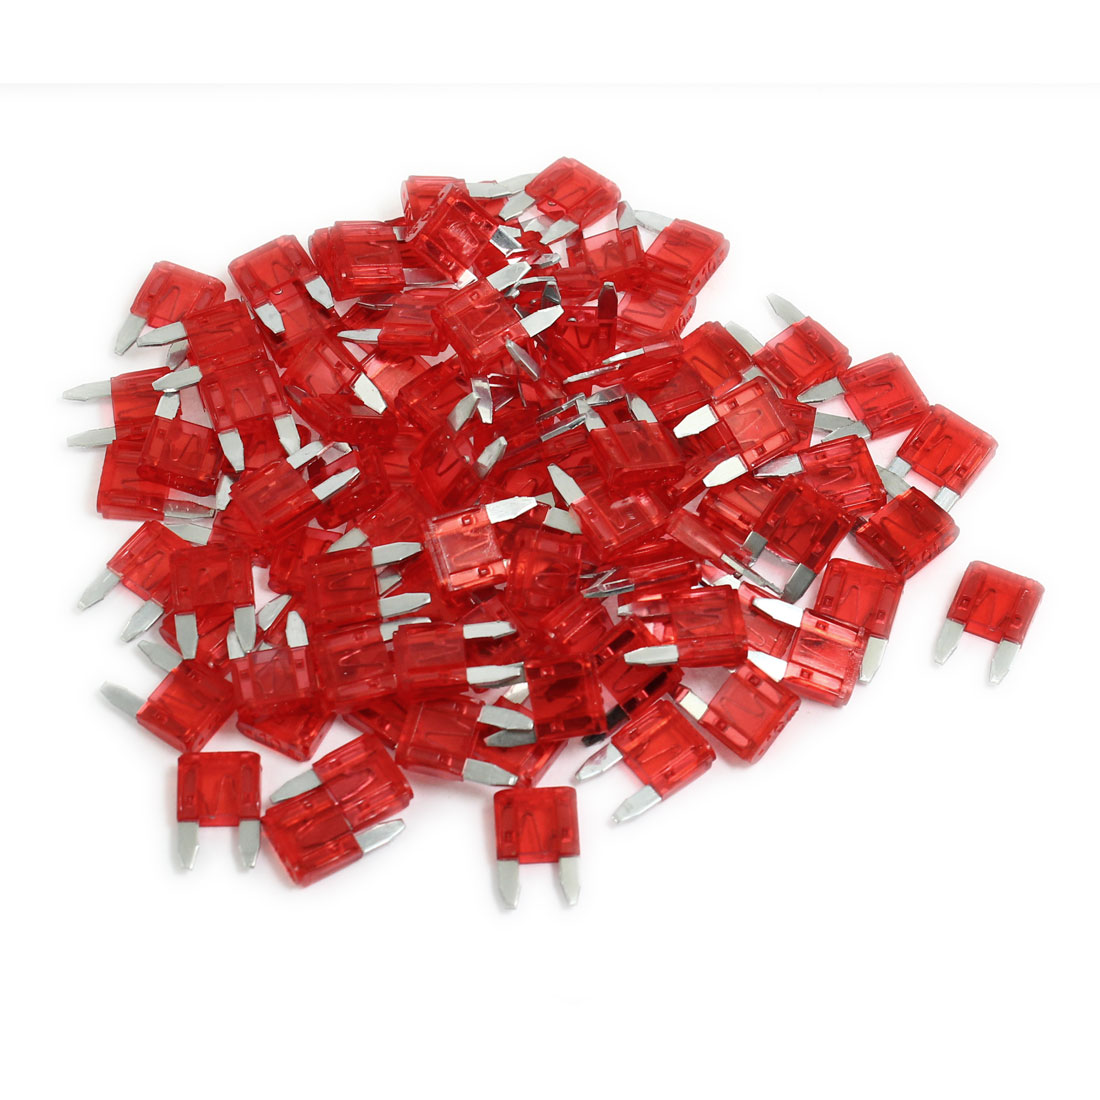 Motorcycle Van 10A ATS Flat Blade Fuse Red 100 Pieces